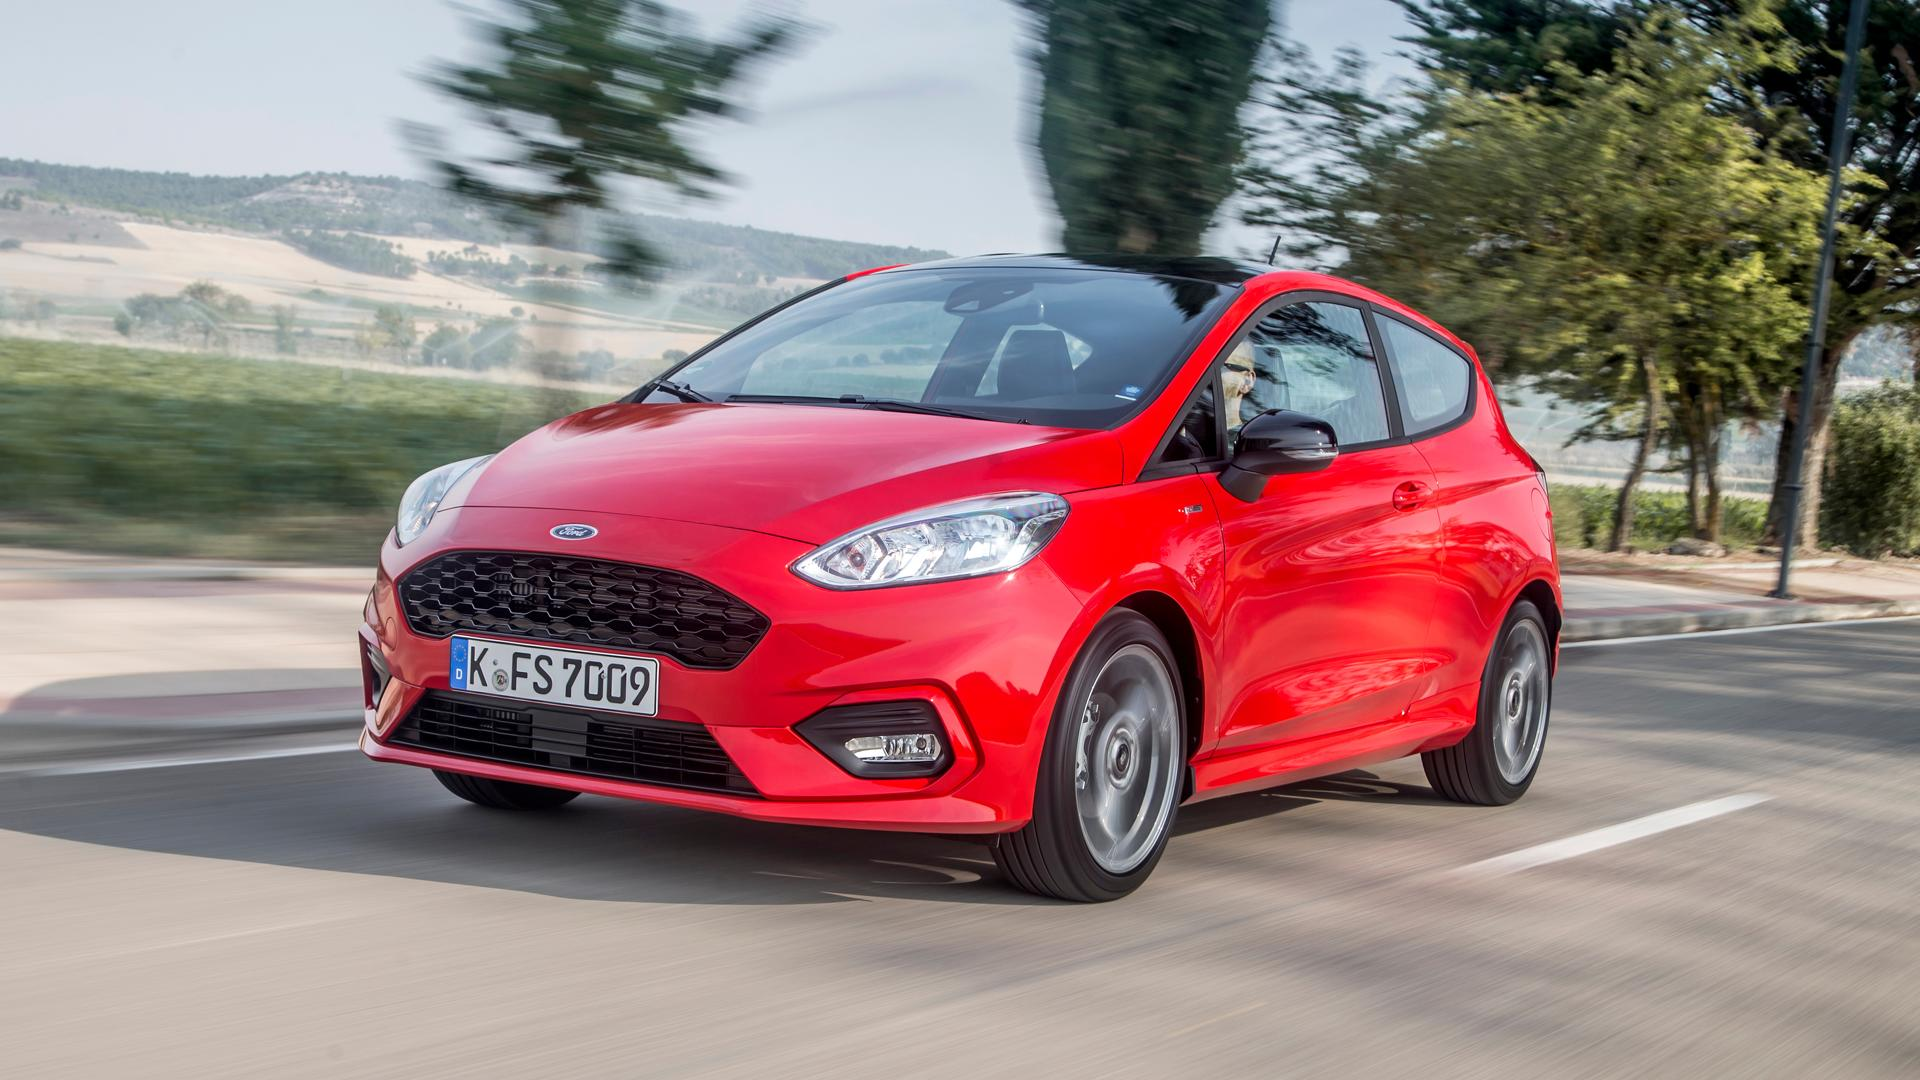 2018 ford fiesta. exellent fiesta with 2018 ford fiesta d